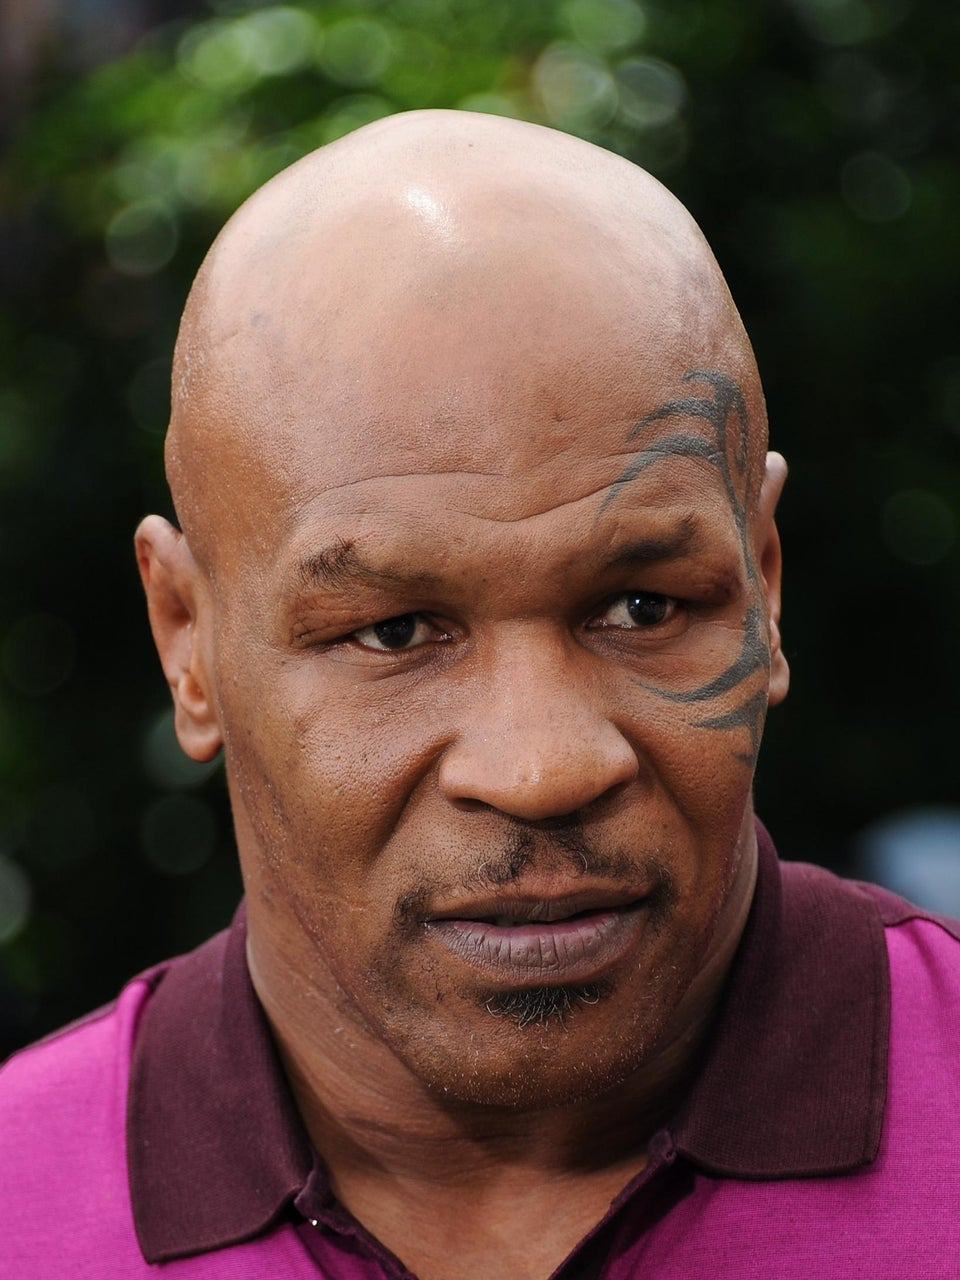 Mike Tyson: 'I'm on the Verge of Dying' From Alcoholism